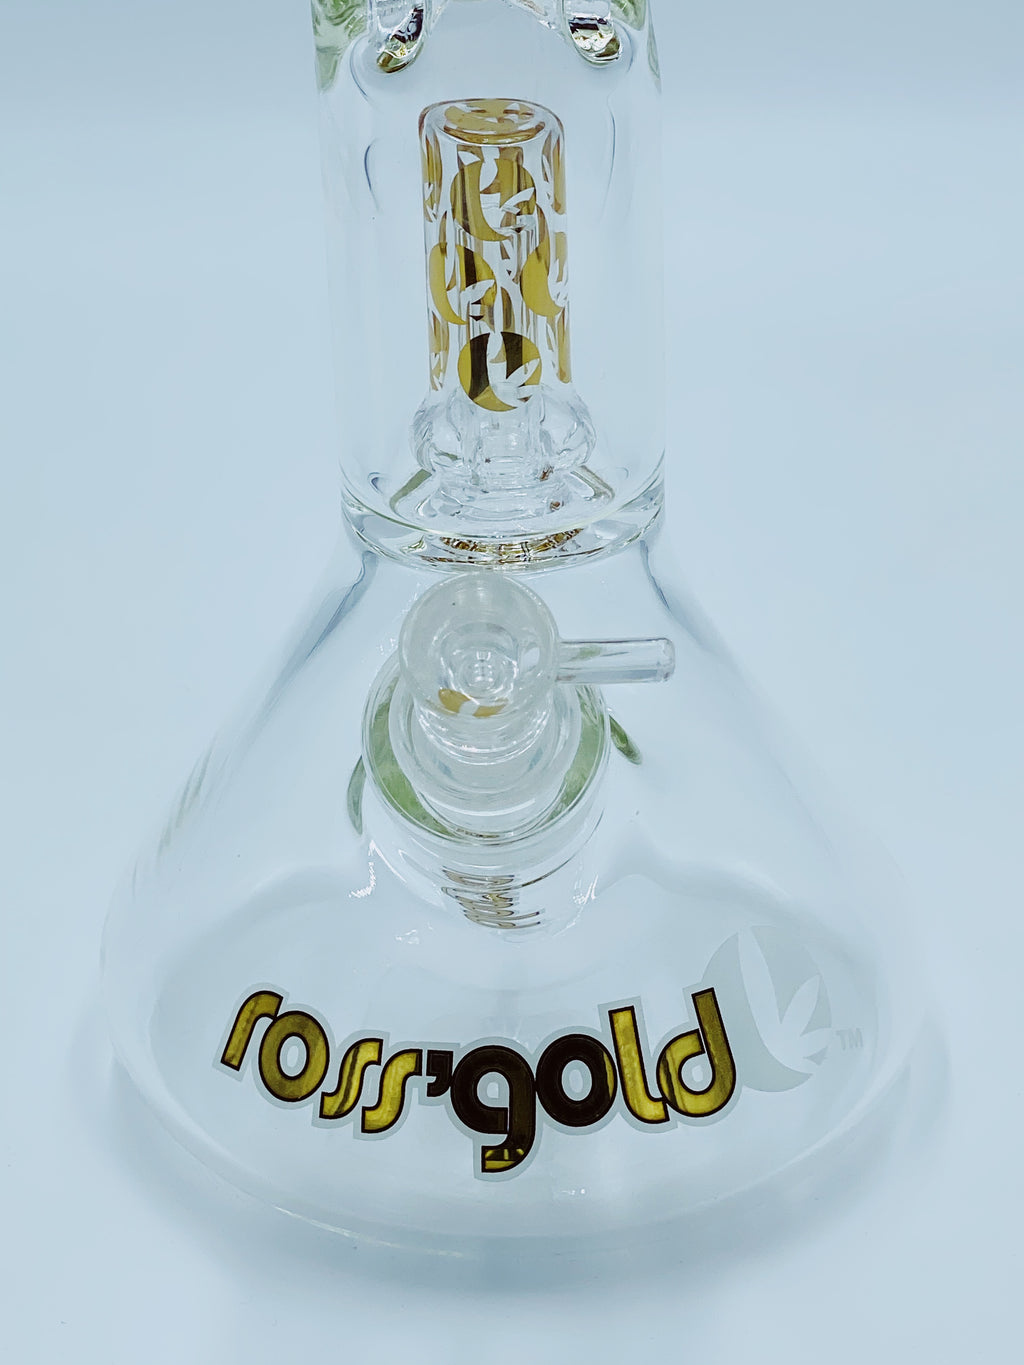 ROSS GOLD PERCOLATOR - Smoke Country - Land of the artistic glass blown bongs